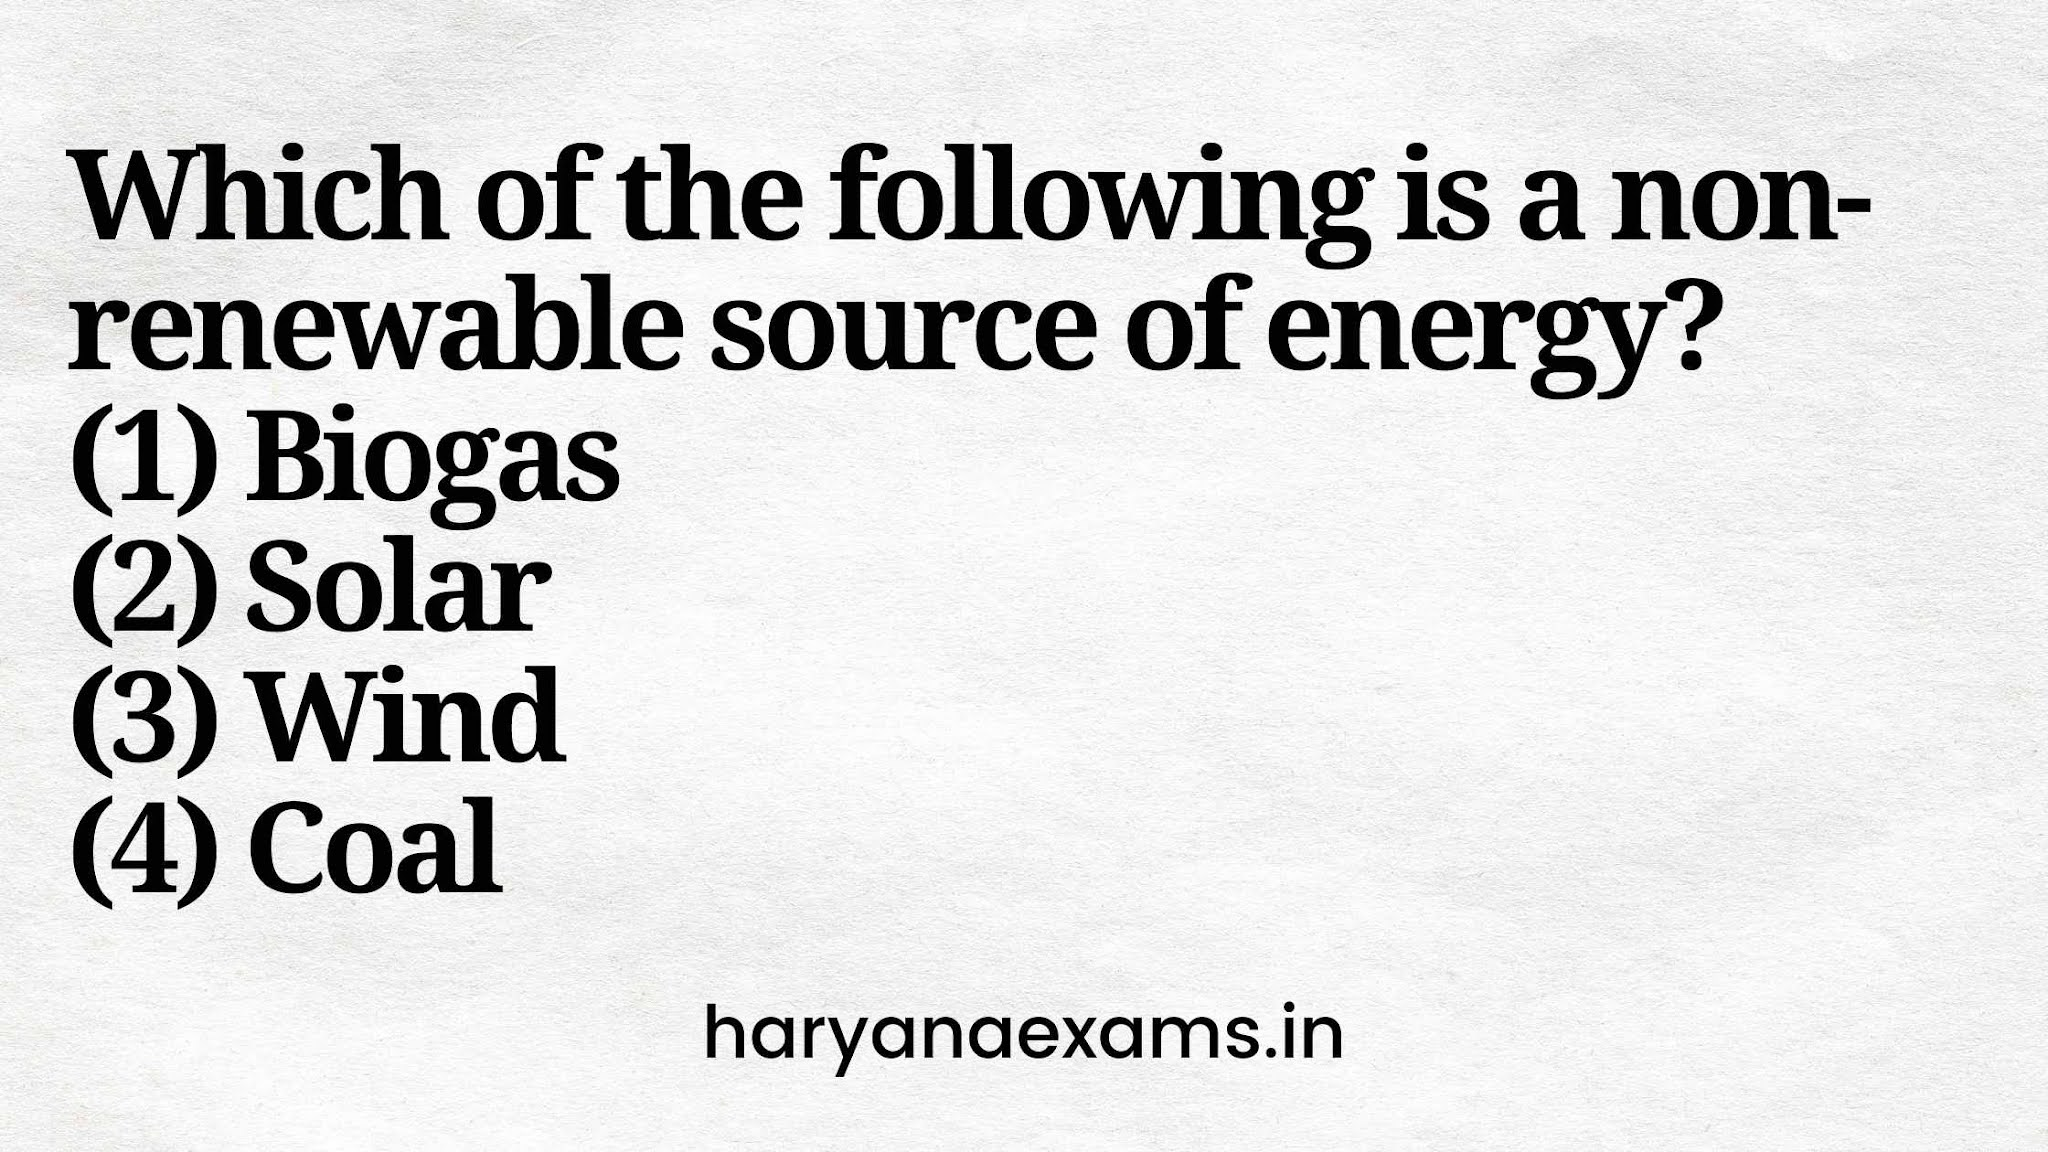 Which of the following is a non-renewable source of energy?   (1) Biogas   (2) Solar   (3) Wind   (4) Coal